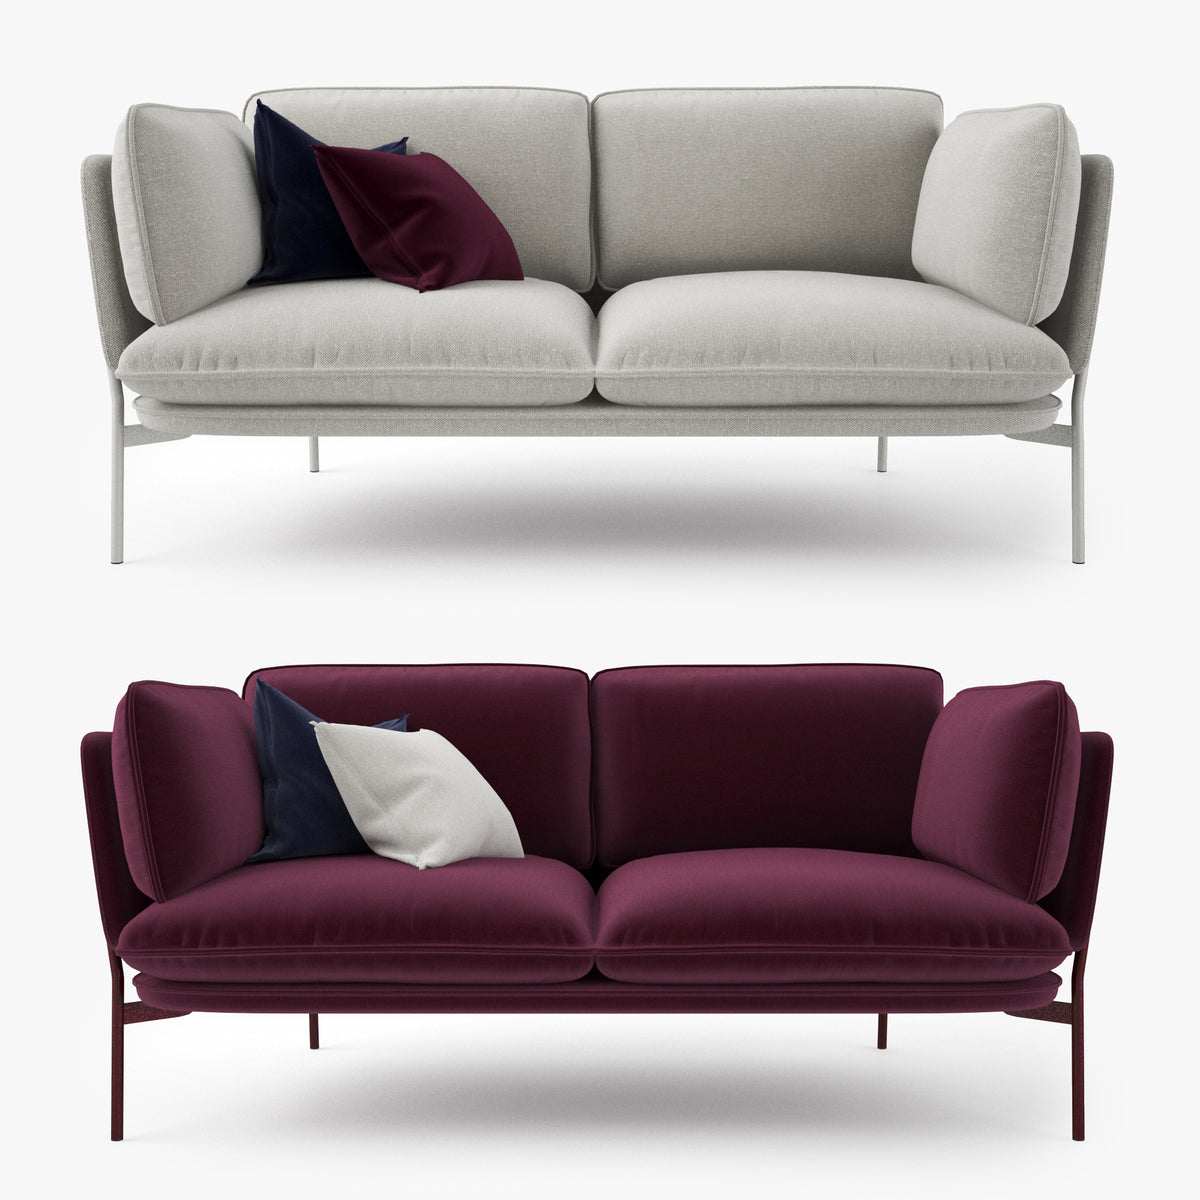 And Tradition Cloud Two Seater Sofa 3D Model